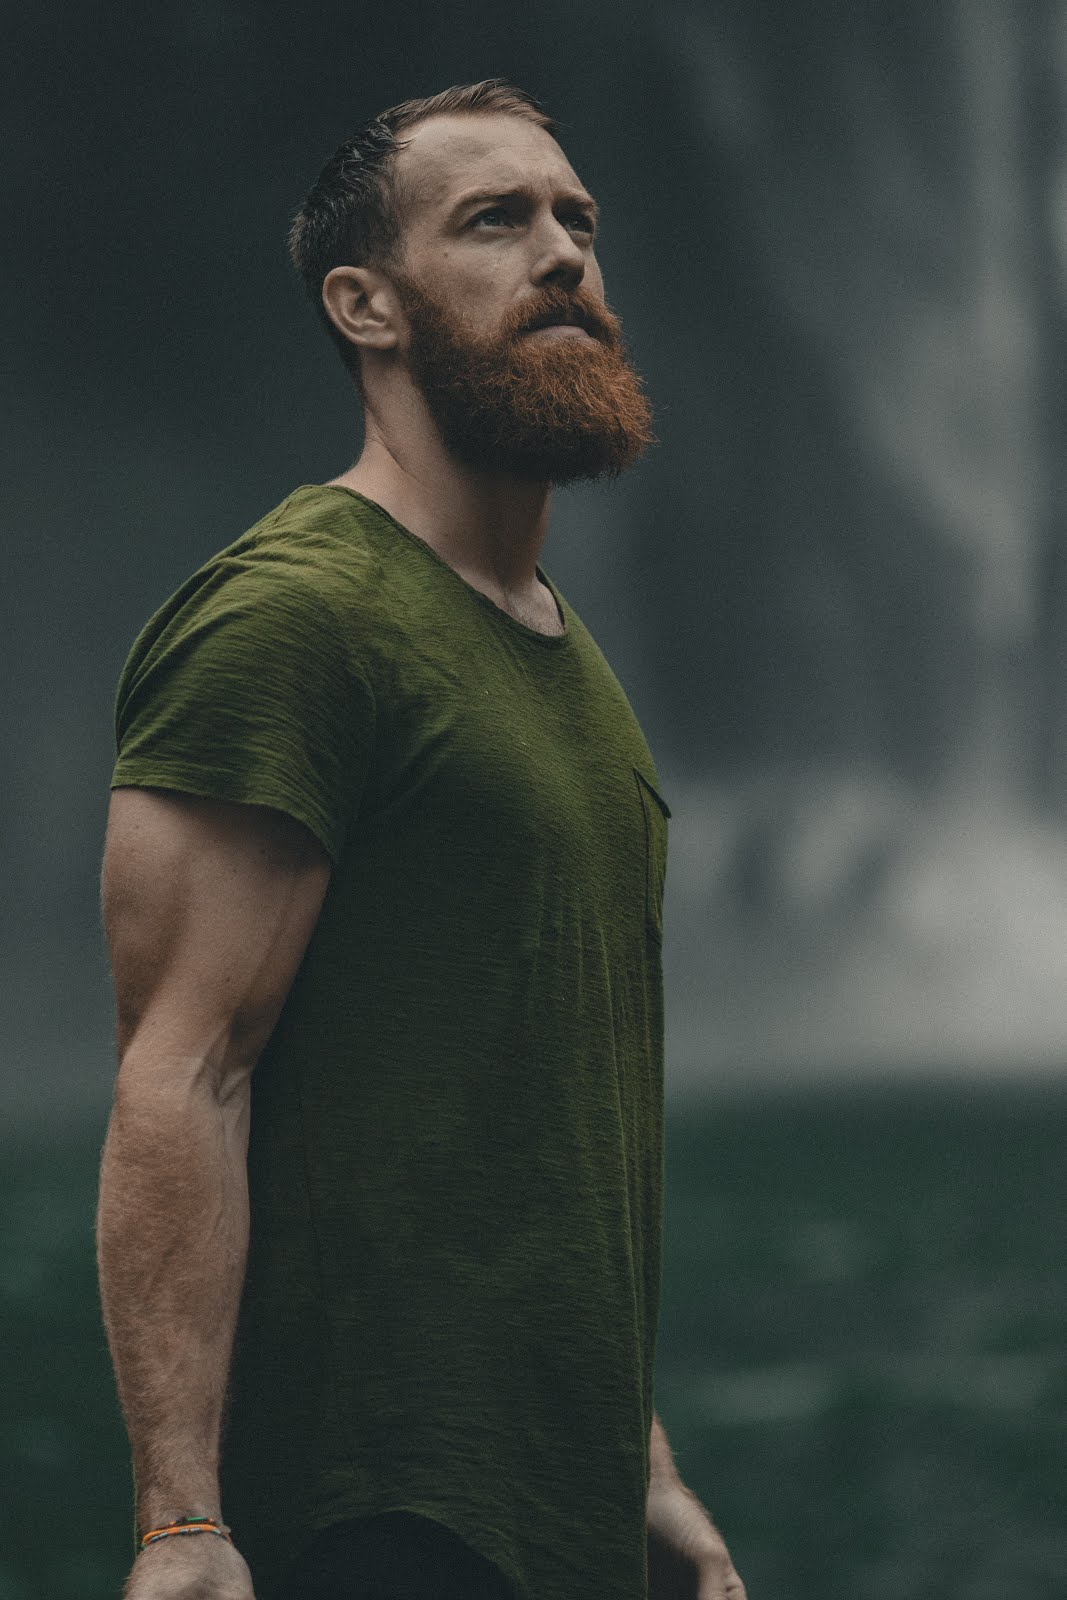 bearded man wearing green shirt